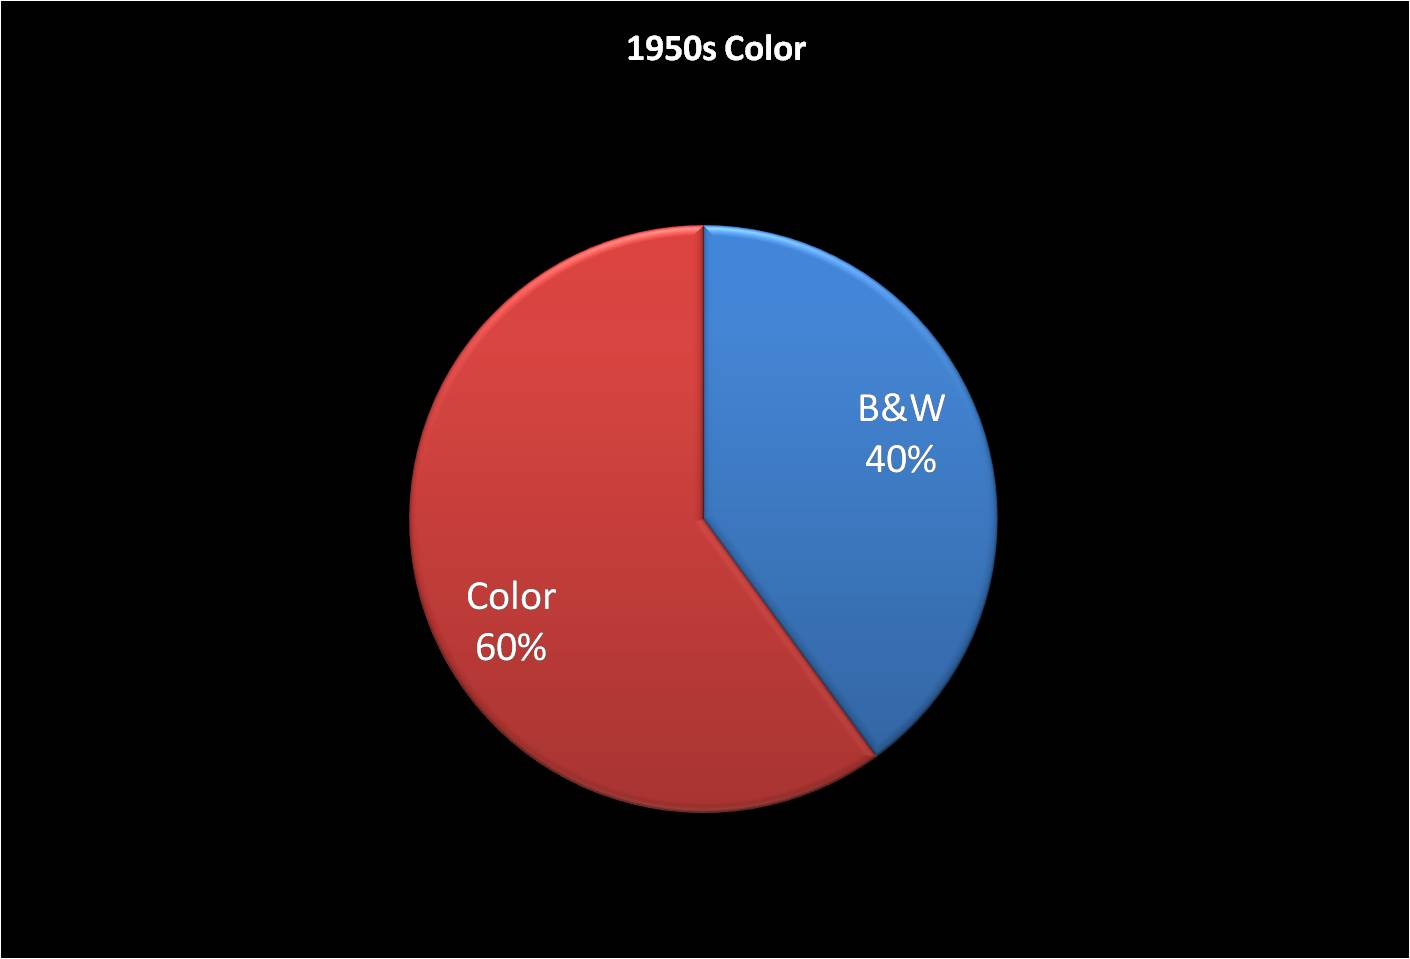 Color - The 50s